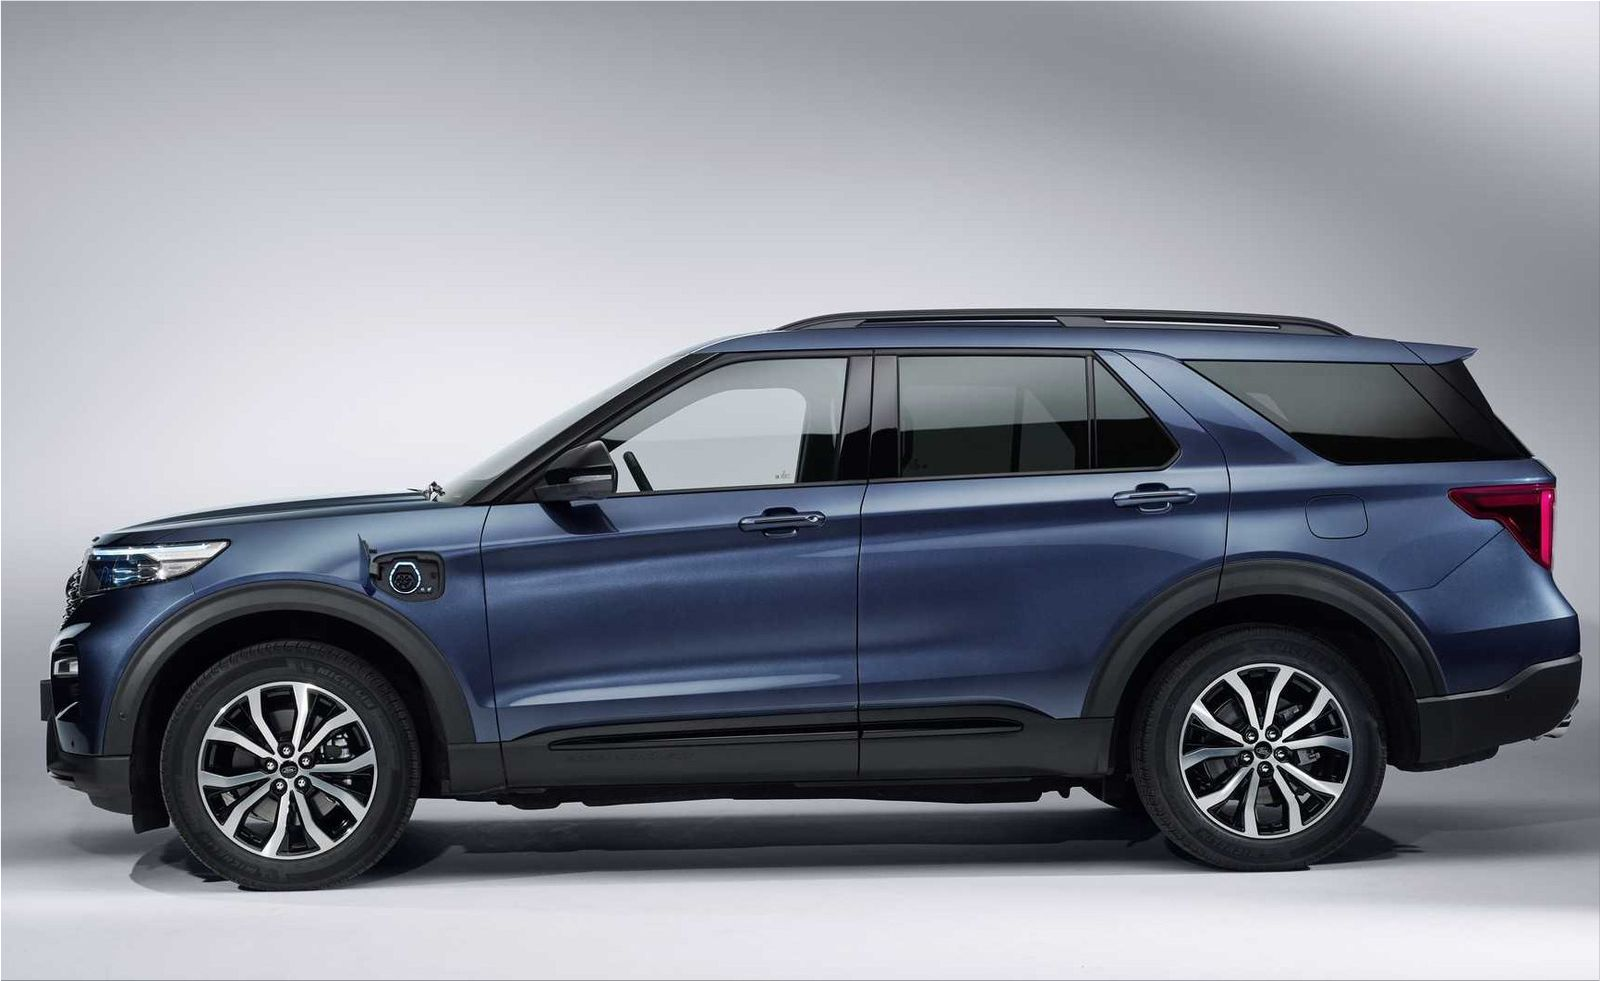 Ford Explorer Phev Is Sold At A Price Of 74 000 Euros Hybrid Cars Electric Hunter